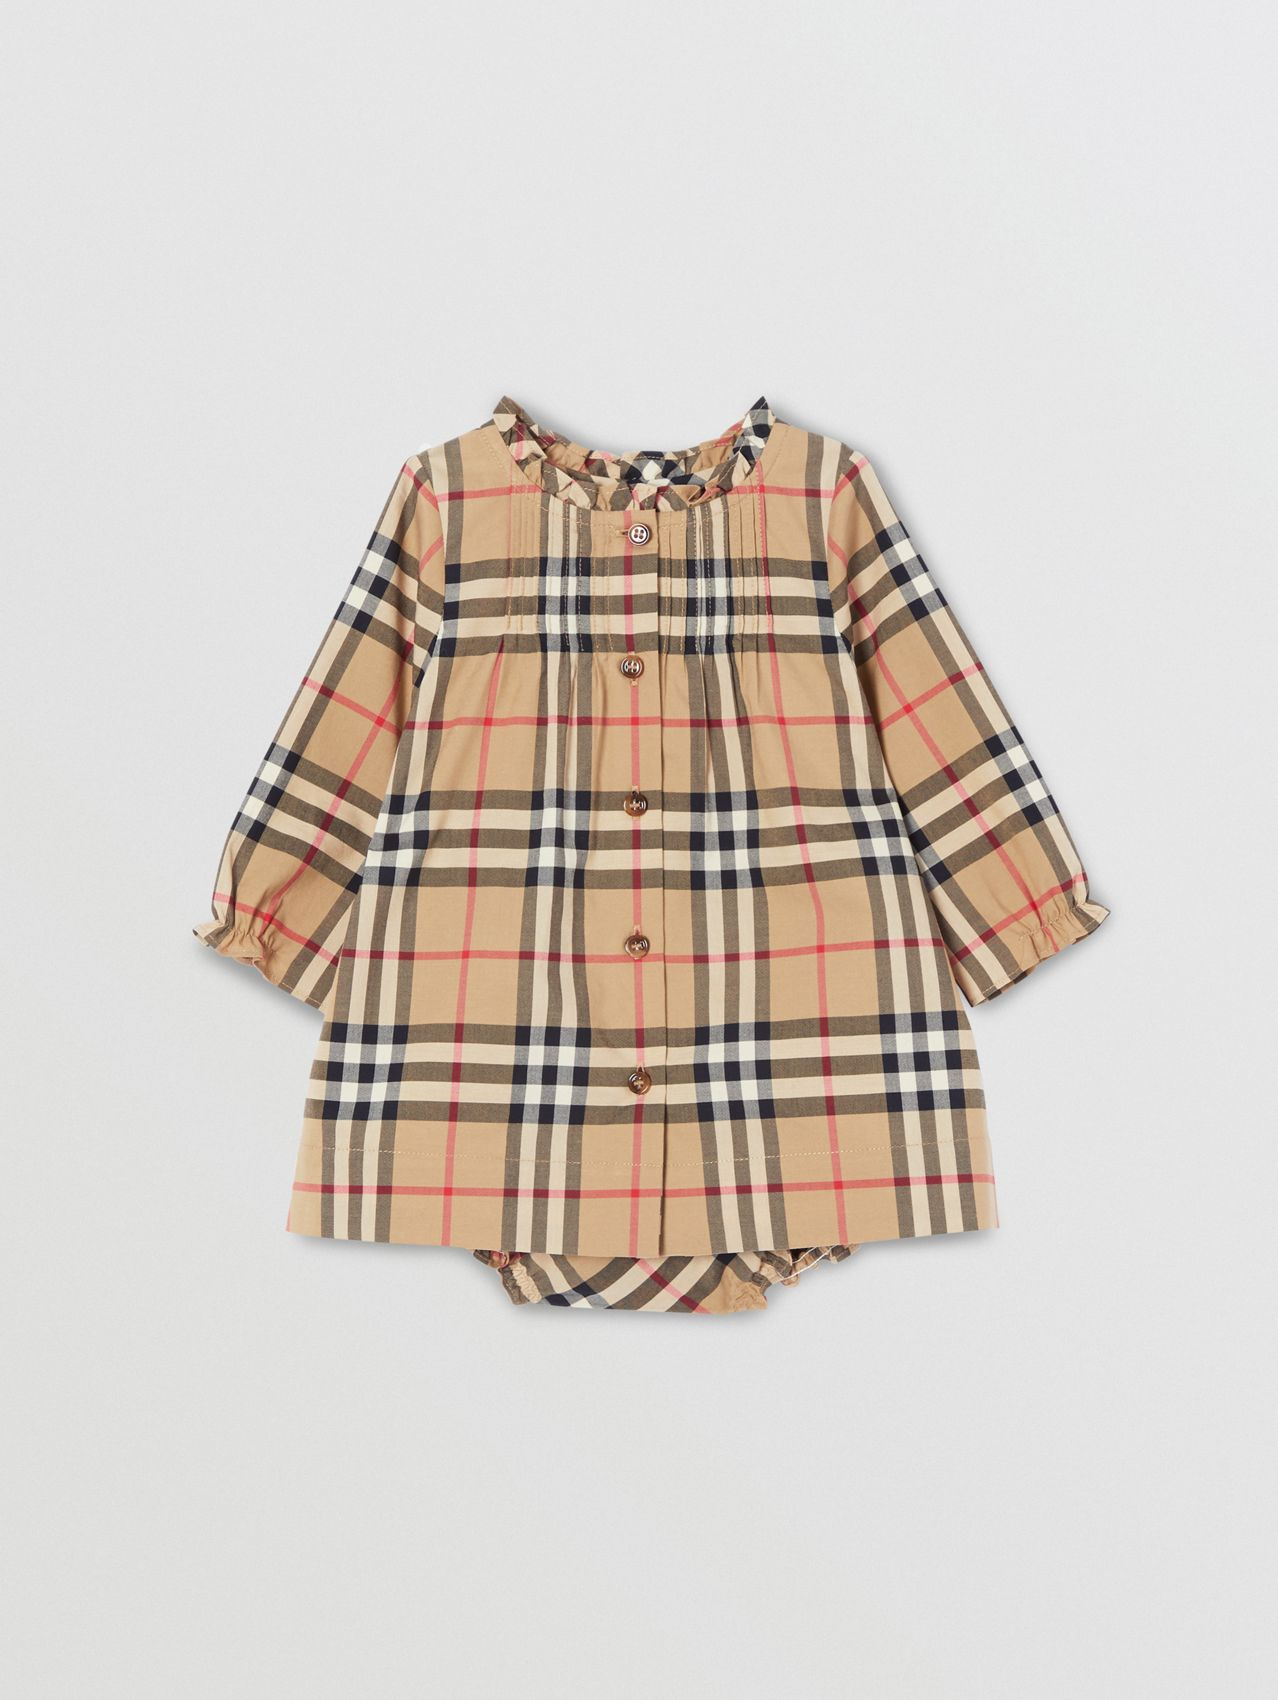 Vintage Check Cotton Dress with Bloomers (Archive Beige)